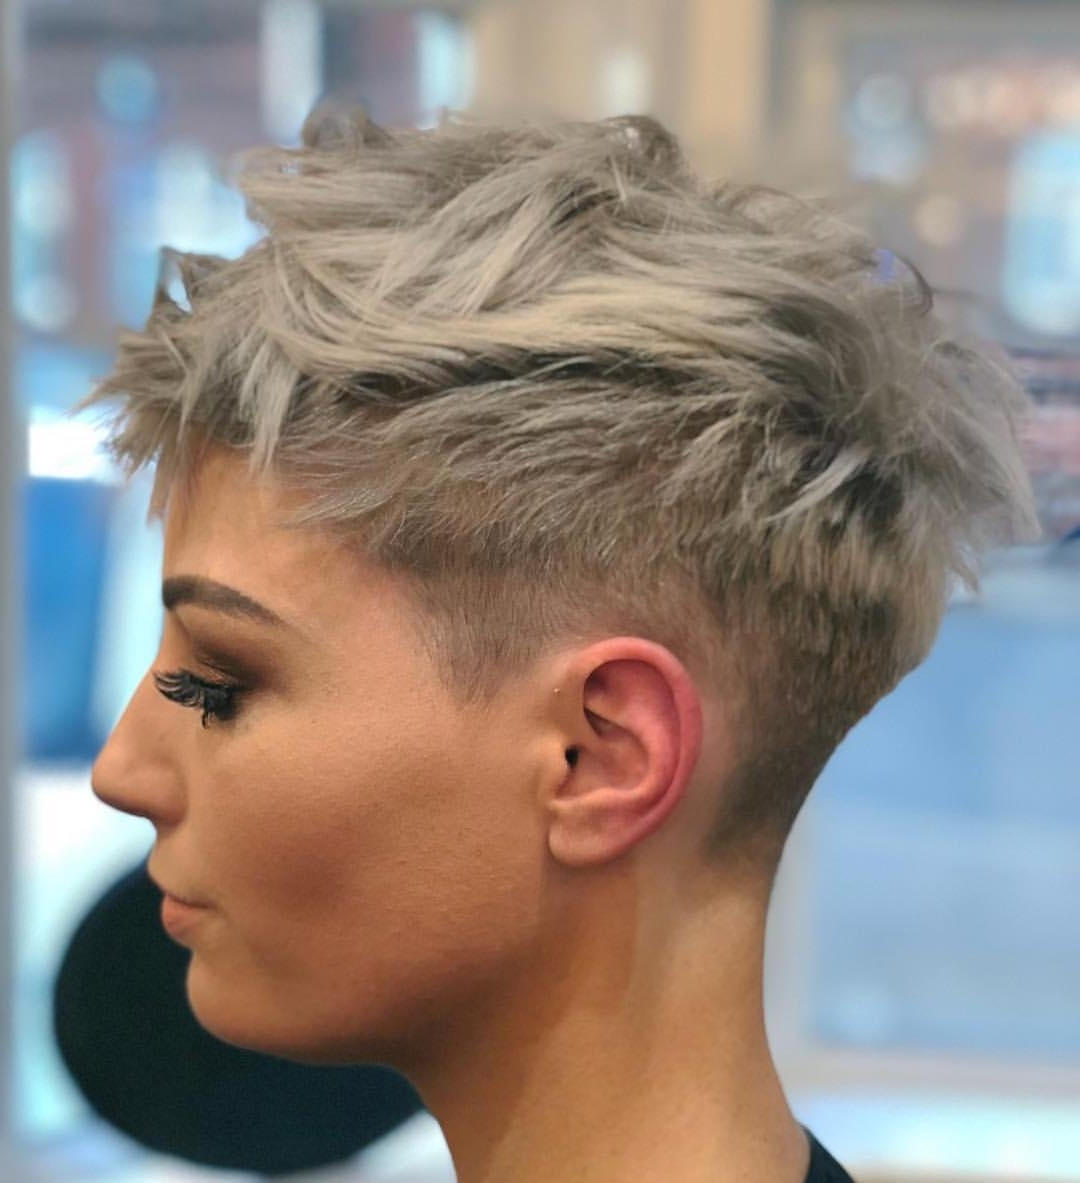 10 Stylish Pixie Haircuts In Ultra Modern Shapes, Women Hairstyles Inside Well Known Choppy Pixie Fade Hairstyles (View 15 of 20)